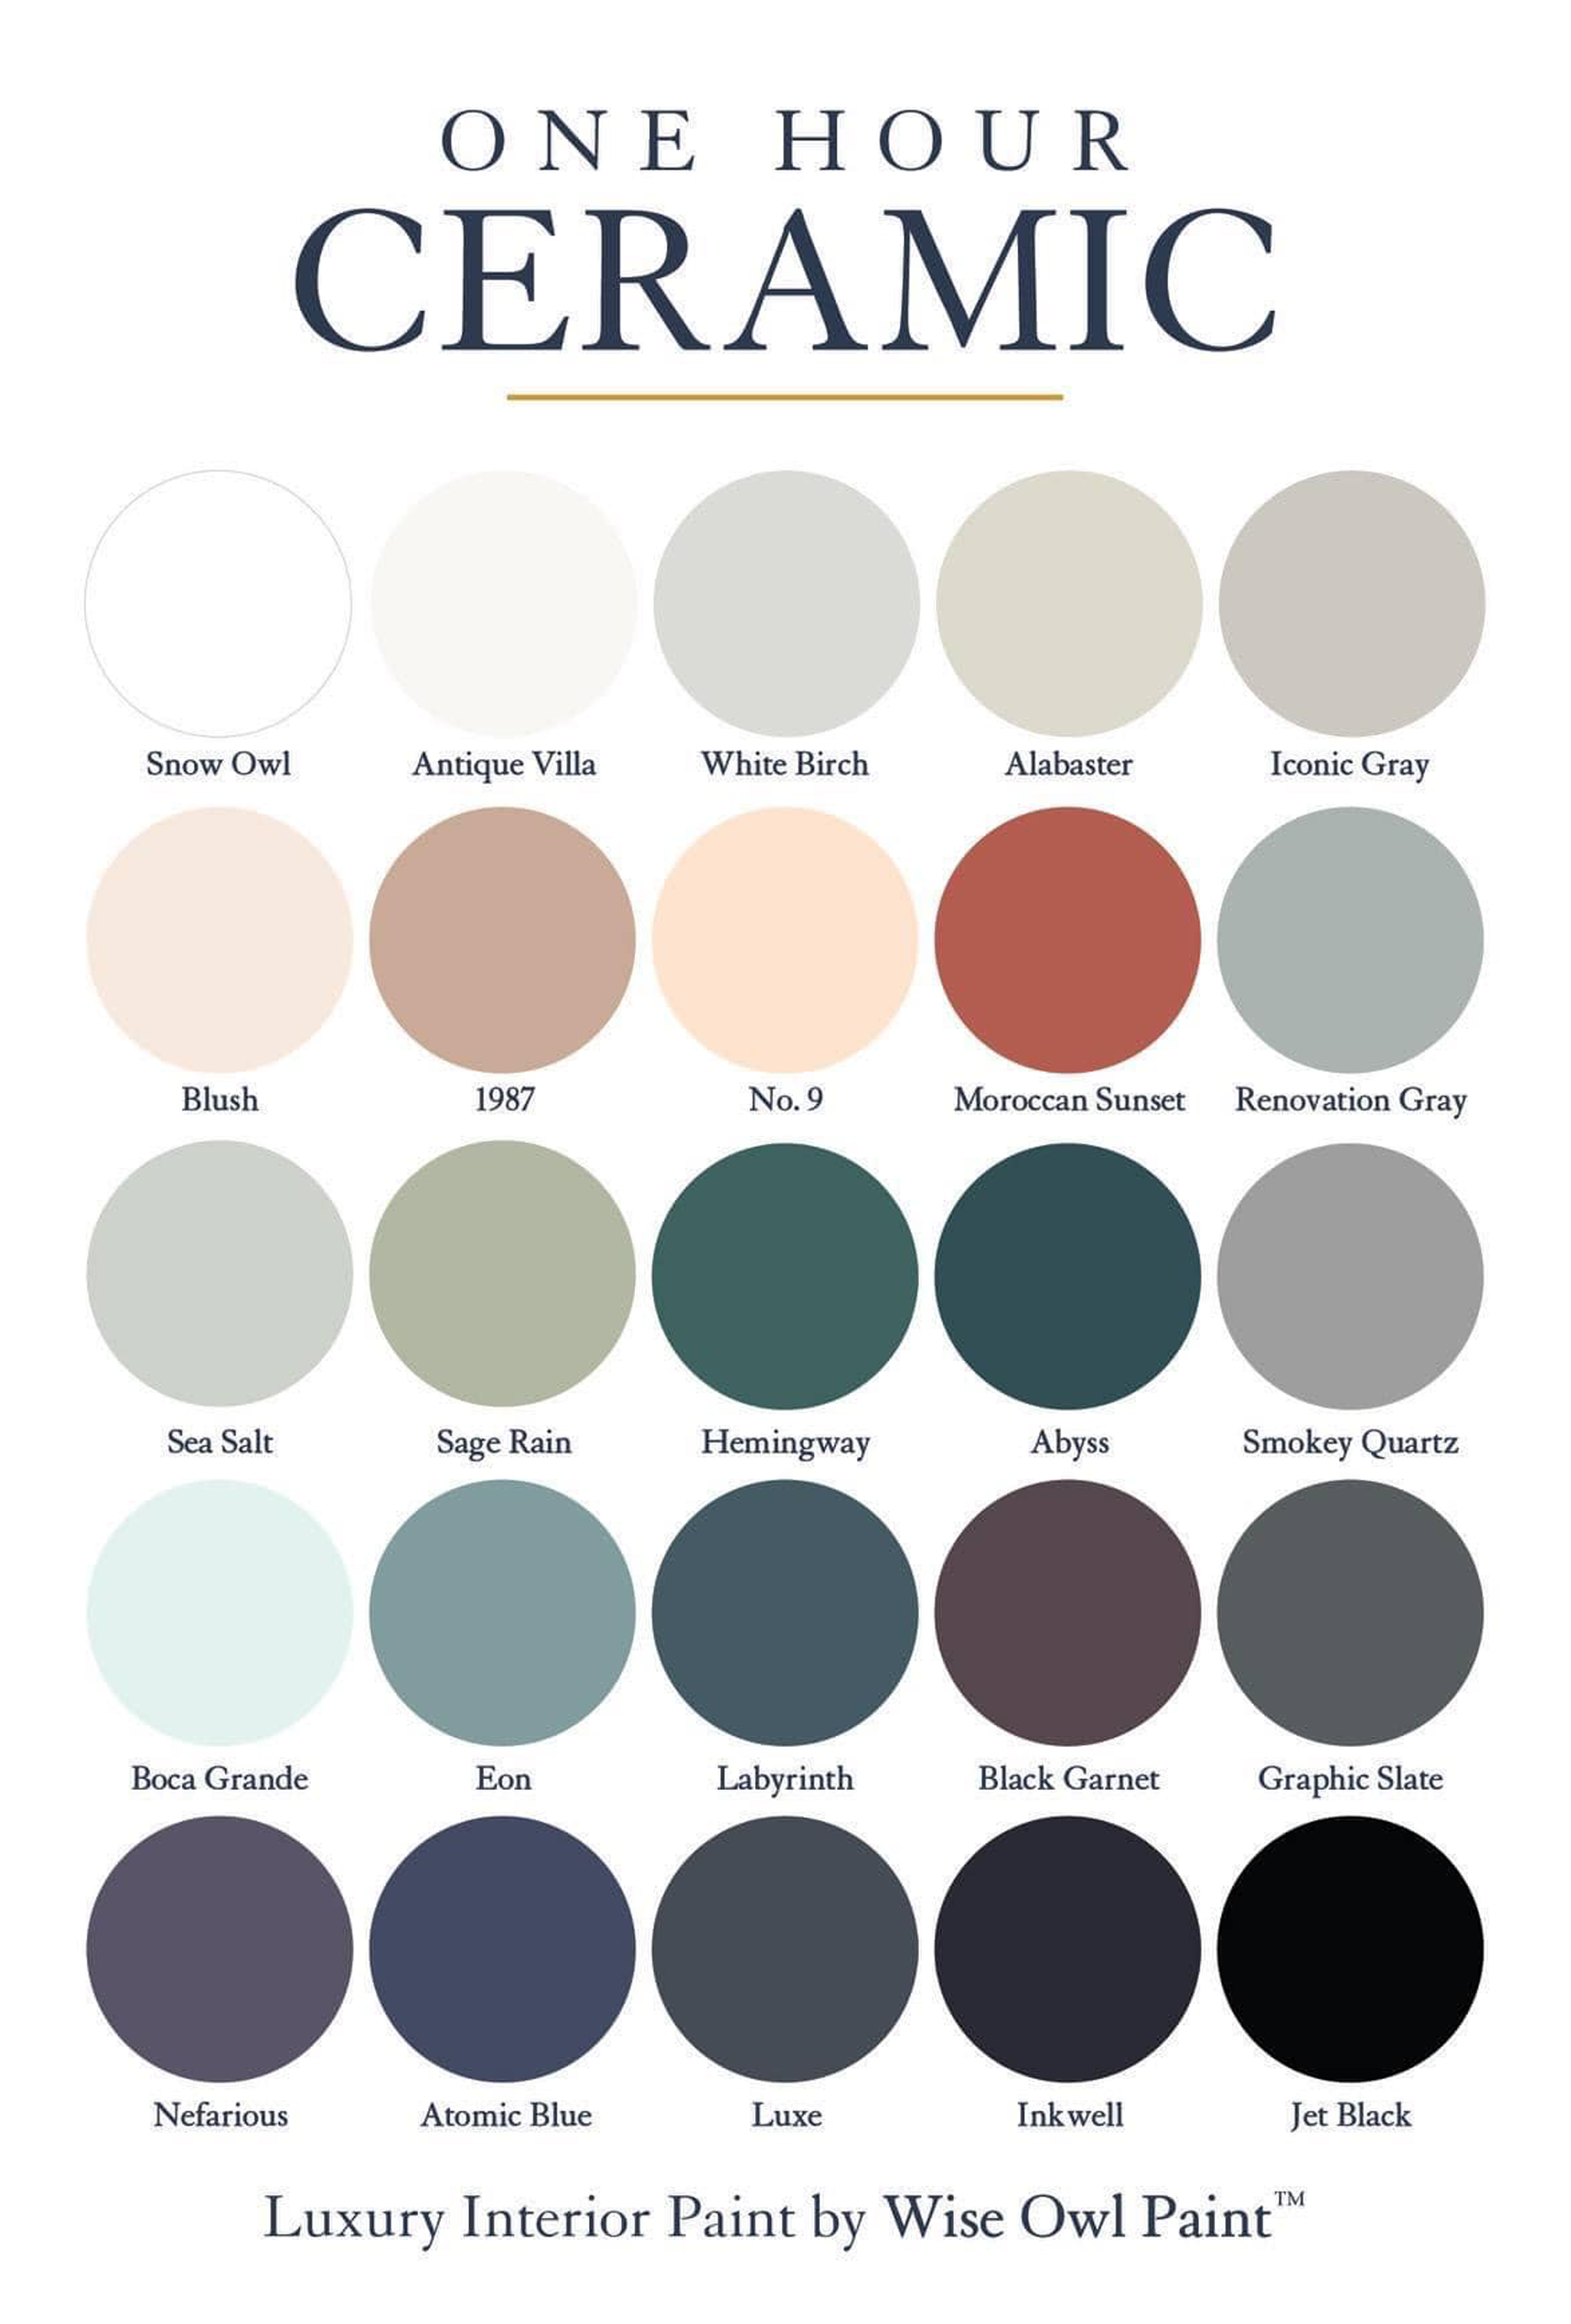 One Hour Ceramic Color Chart.